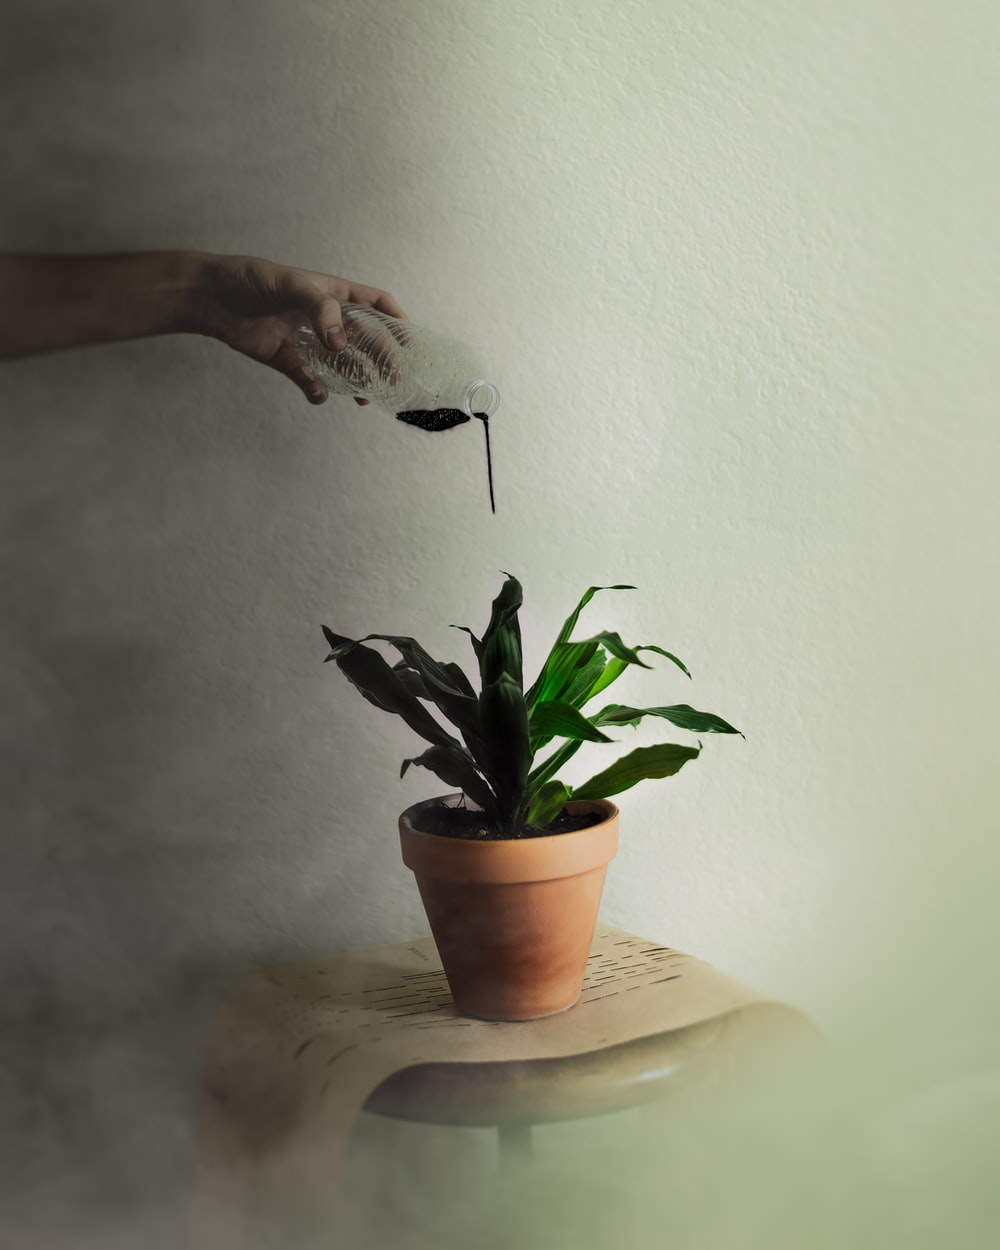 person watering green leafed plant with black liquid